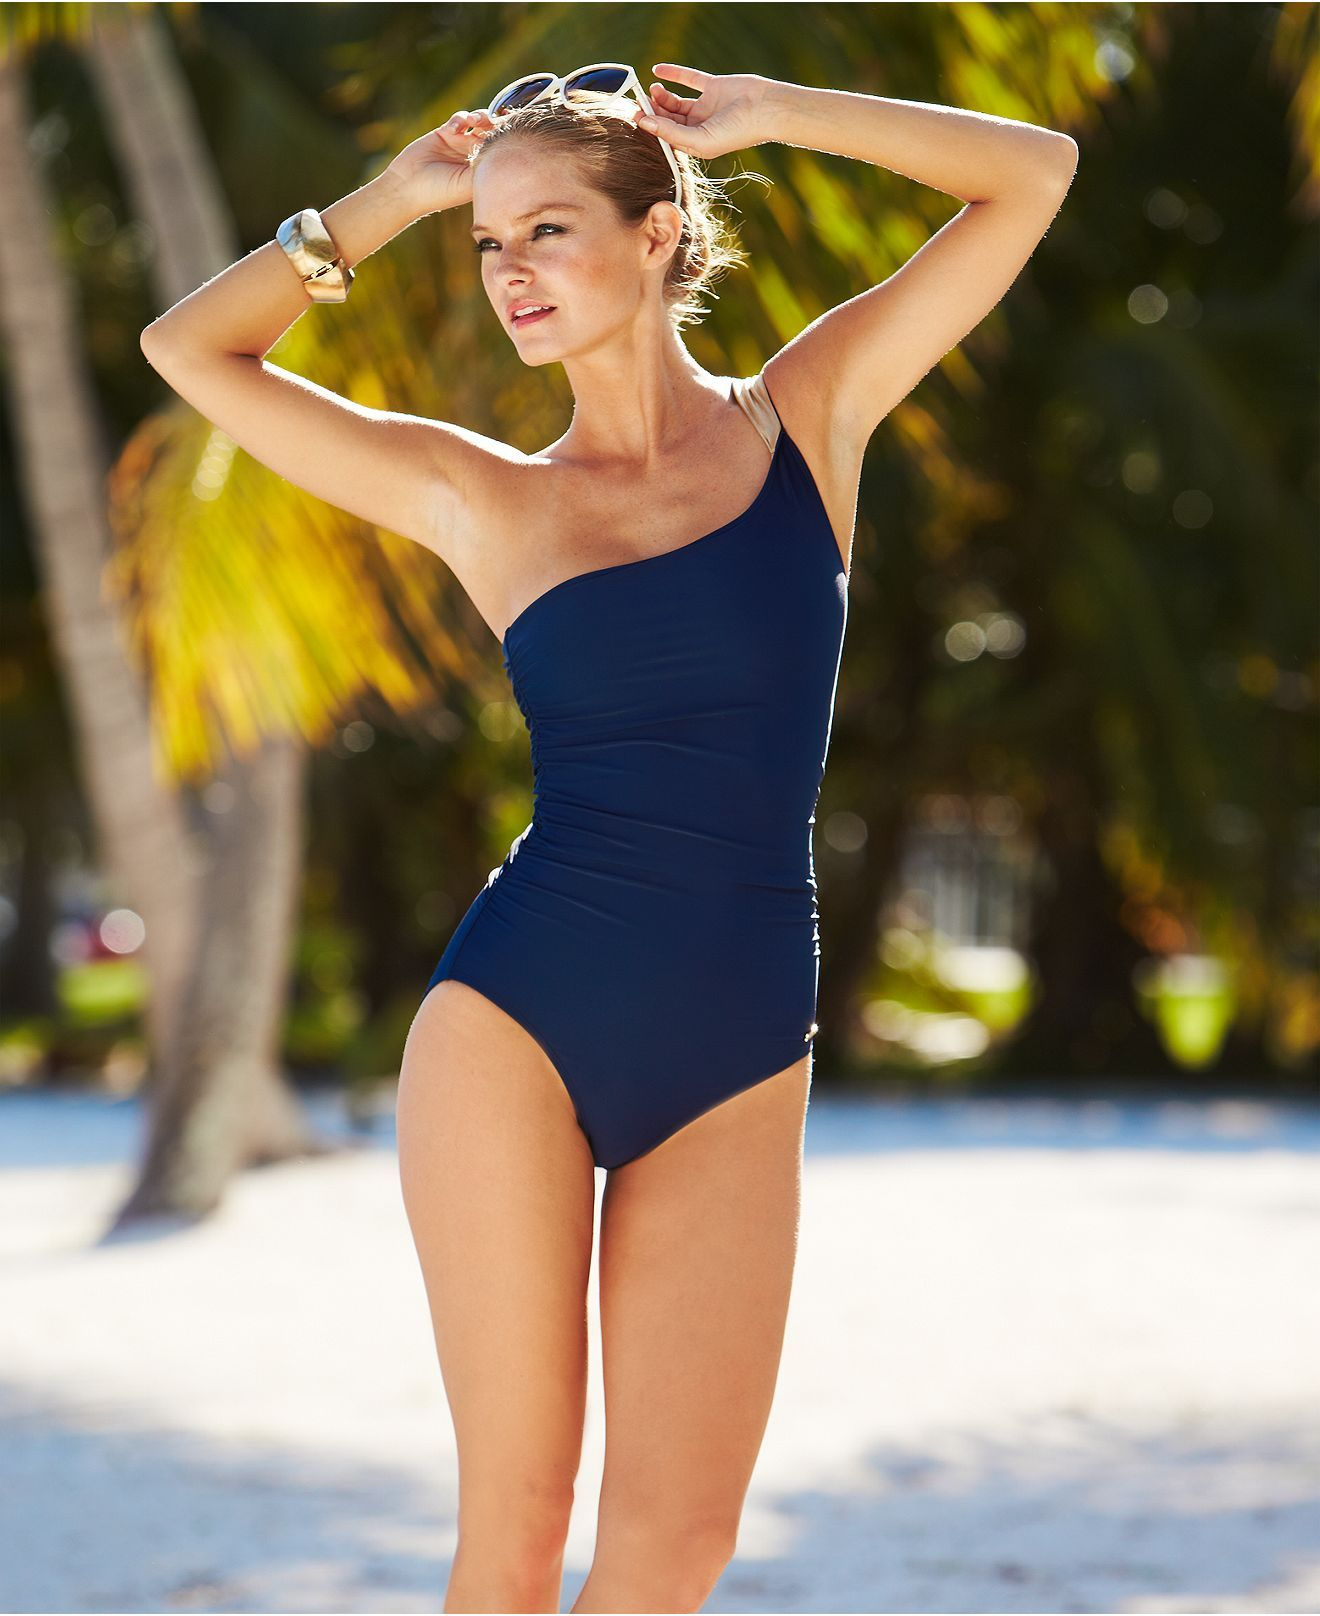 Vince Camuto Swimsuit One Shoulder Ruched One Piece Womens Swimwear Macy S Swimsuits Swimwear One Piece